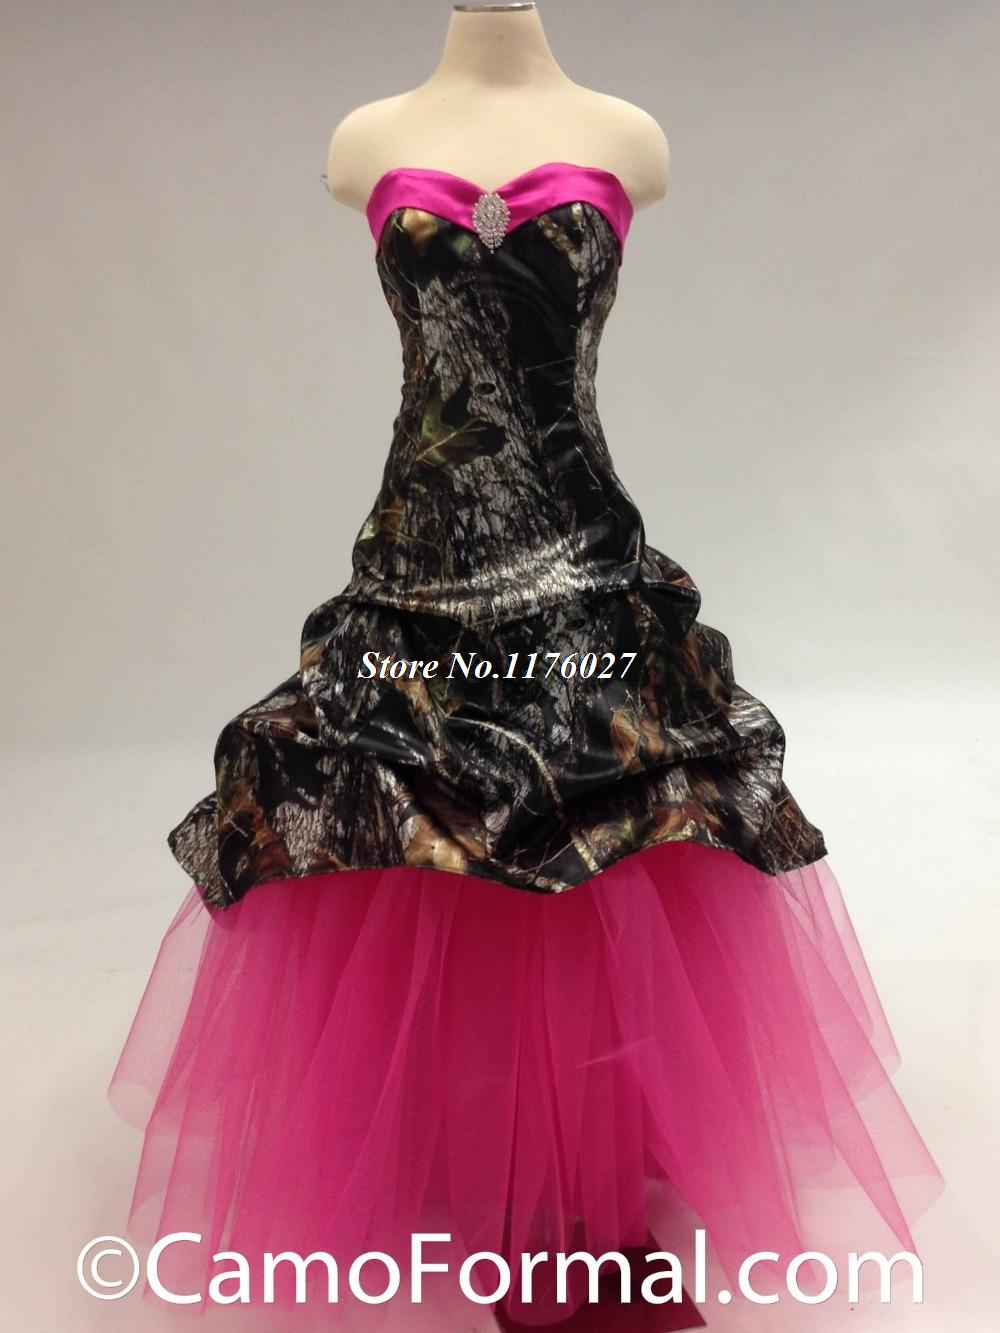 Colorful Red Blue Pink Camo Wedding Dress 2017 Hot Sweetheart Vestidos De Novia Plus Size Gowns Bridal C62 In Dresses From